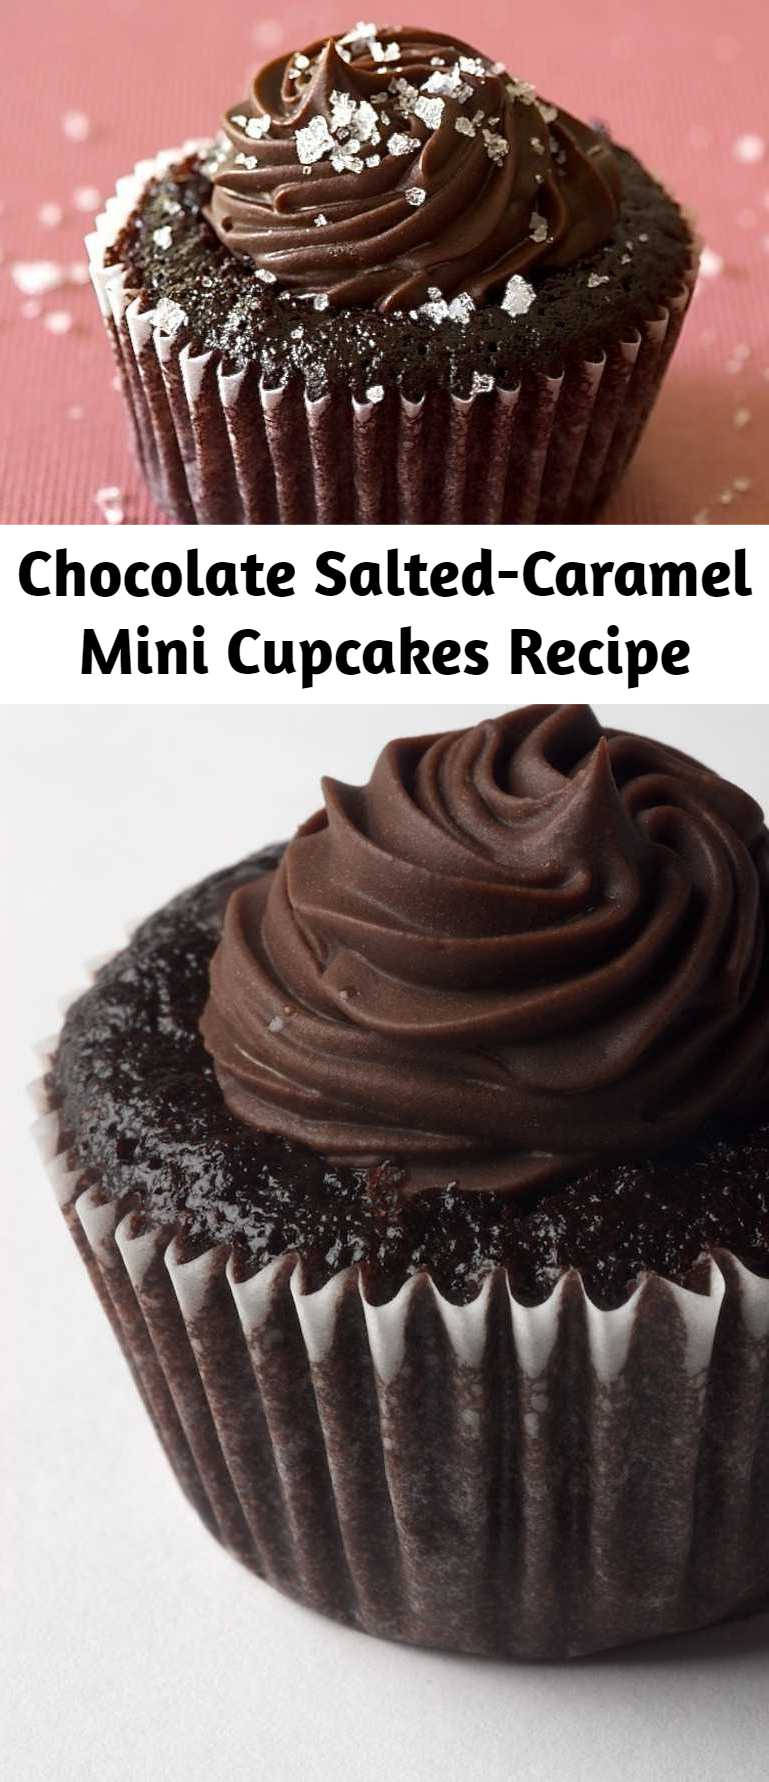 Chocolate Salted-Caramel Mini Cupcakes Recipe - The chocolate cupcakes topped off with that dark chocolate frosting would be enough. Add in the salted caramel filling, and these cupcakes are transformed into something fantastic. They are a bit labor-intensive, but trust me when I say that they are worth every minute.